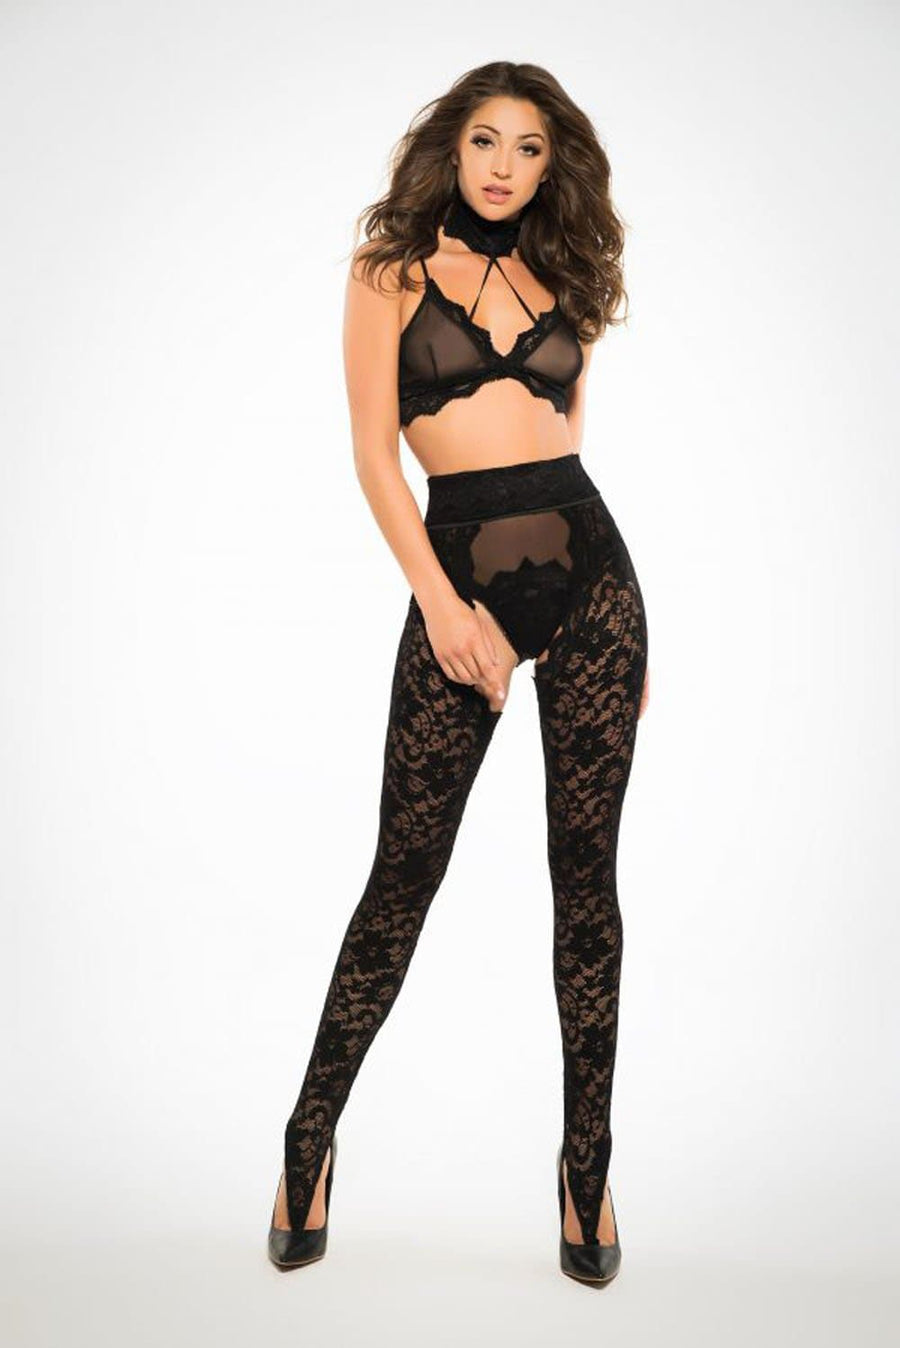 Freya Wild Lace Chaps Panty and Bra - Black - Large